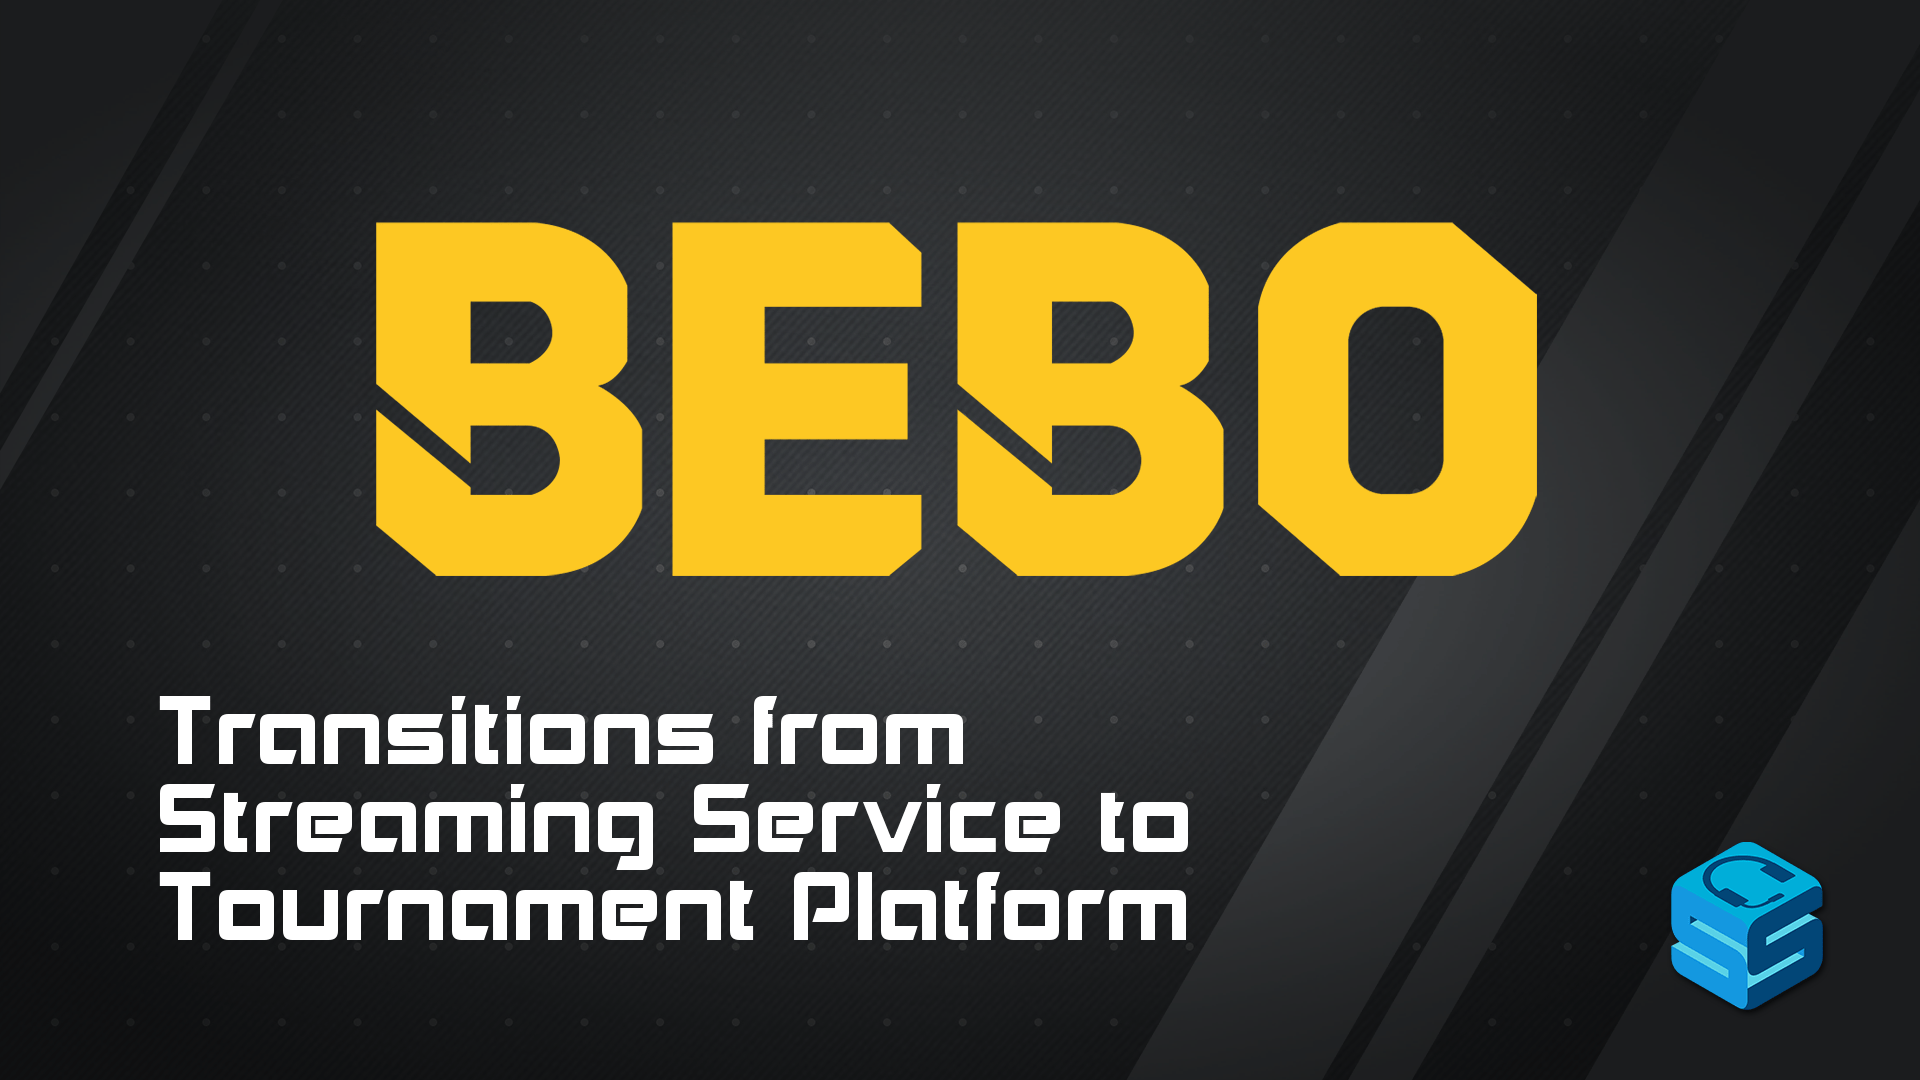 bebo transitions from streaming service to tournament platform